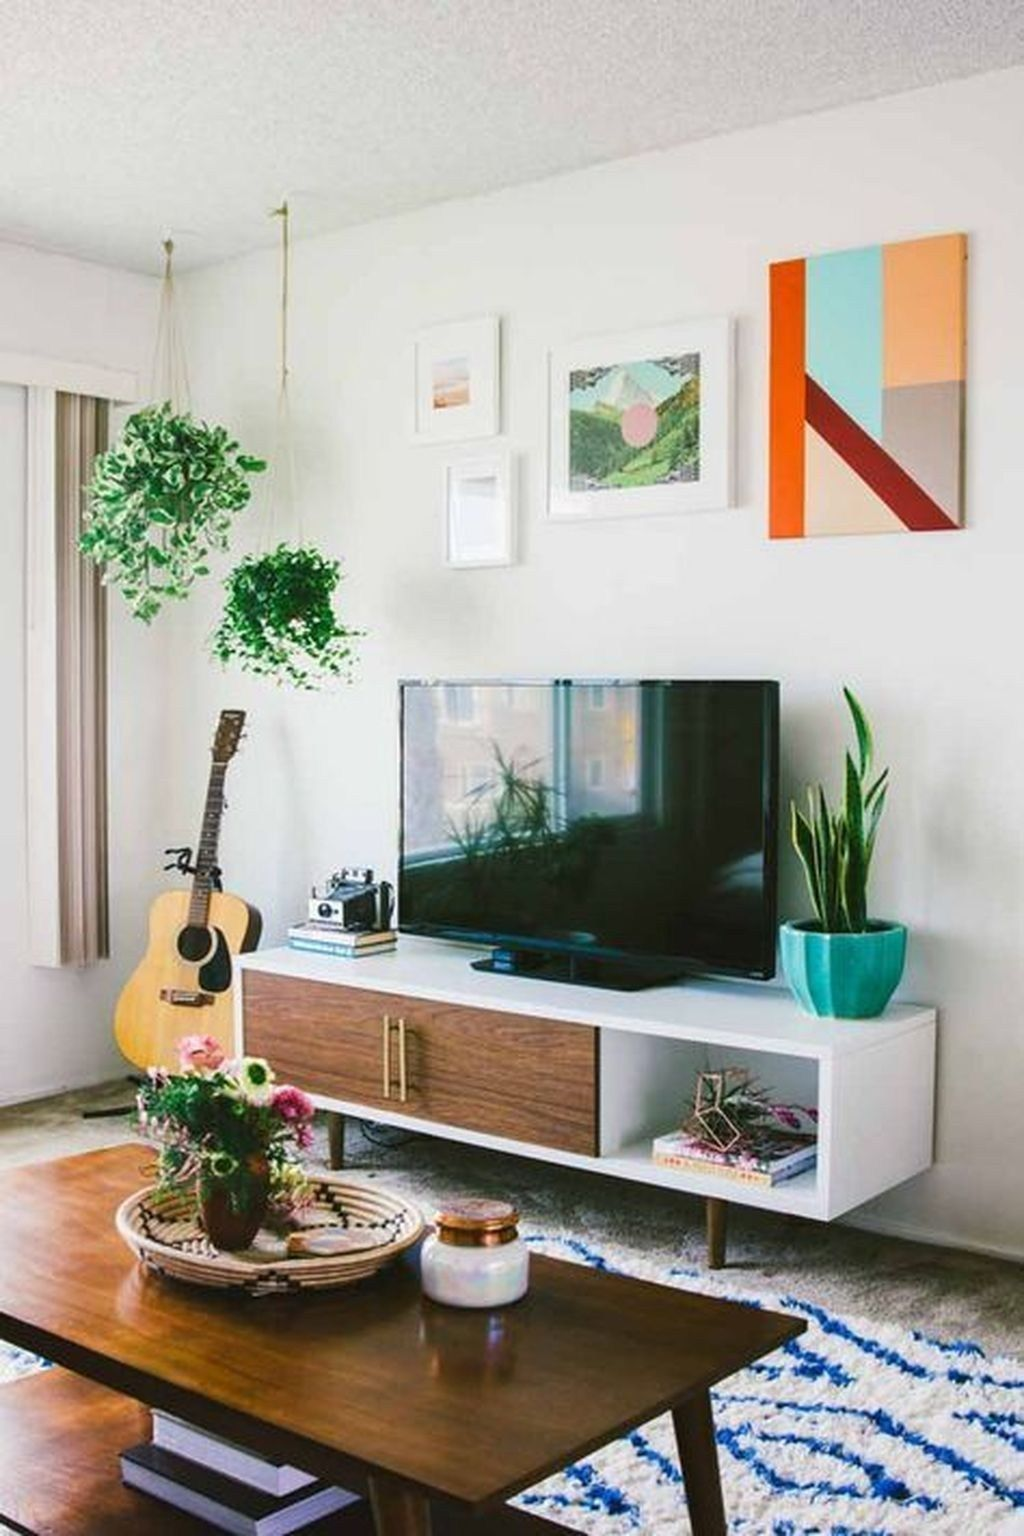 41 Brilliant First Apartment Decorating Ideas On A Budget images